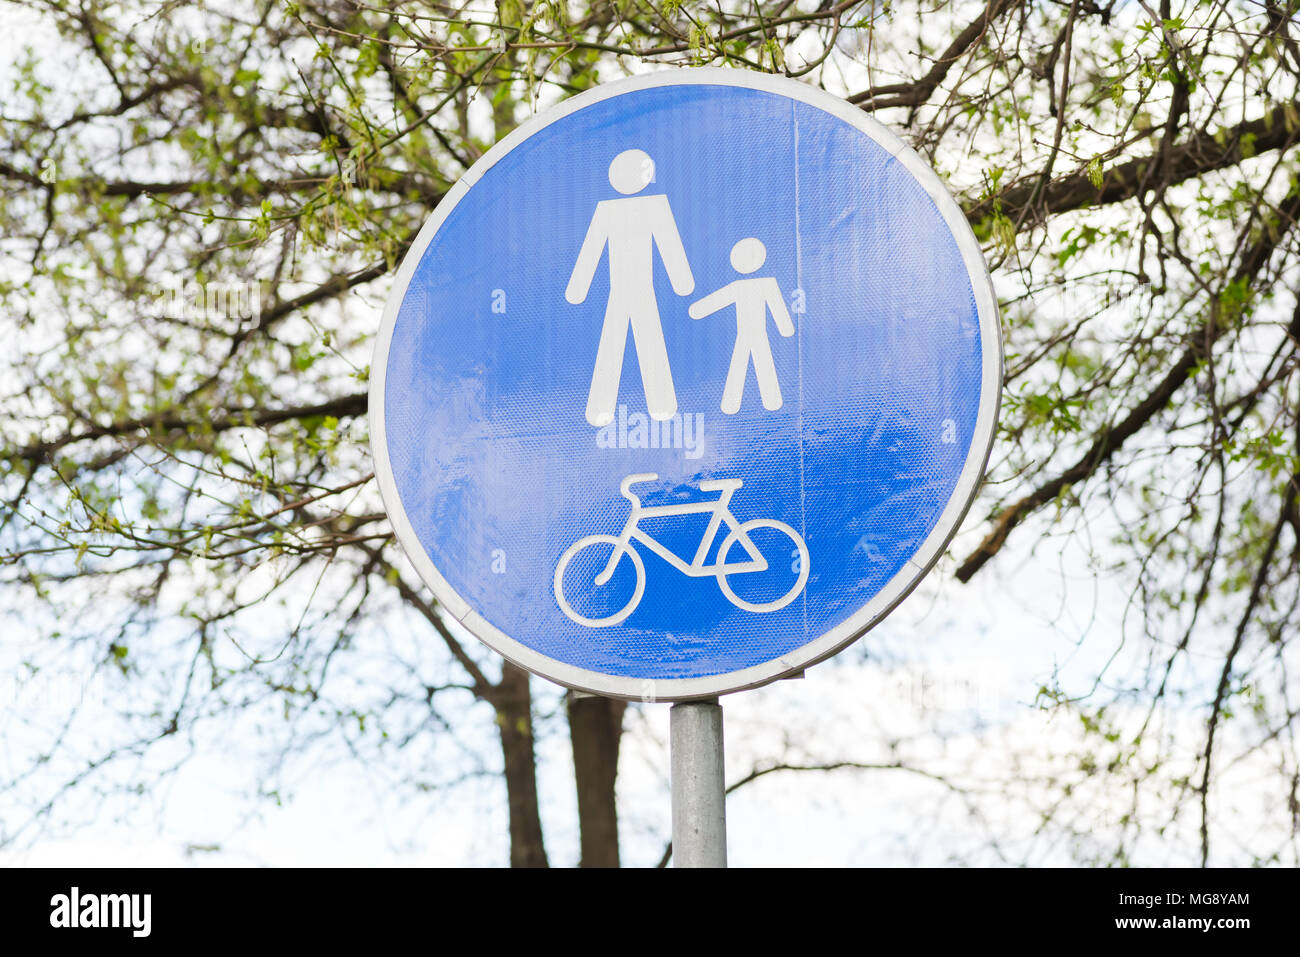 road sign for pedestrians and cyclists - Stock Image